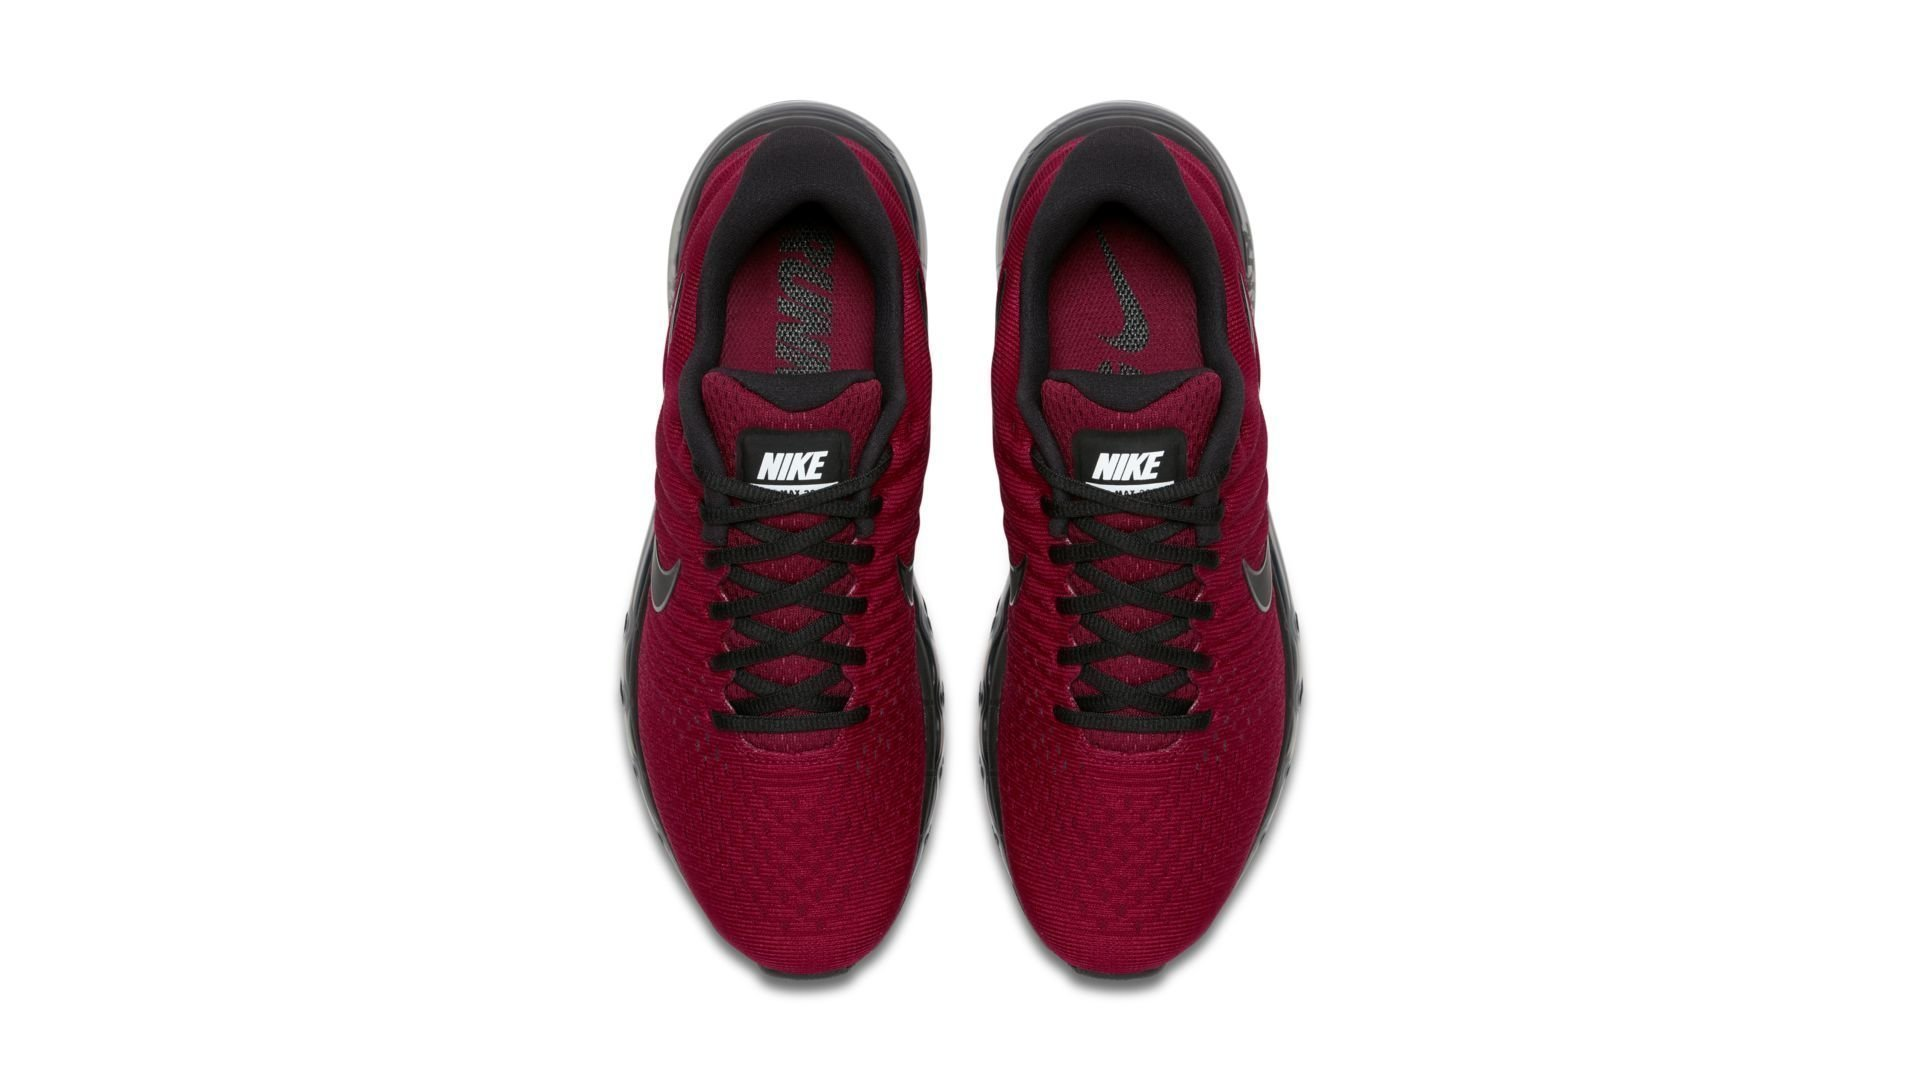 Nike Air Max 2017 Team Red Black (849559-603)